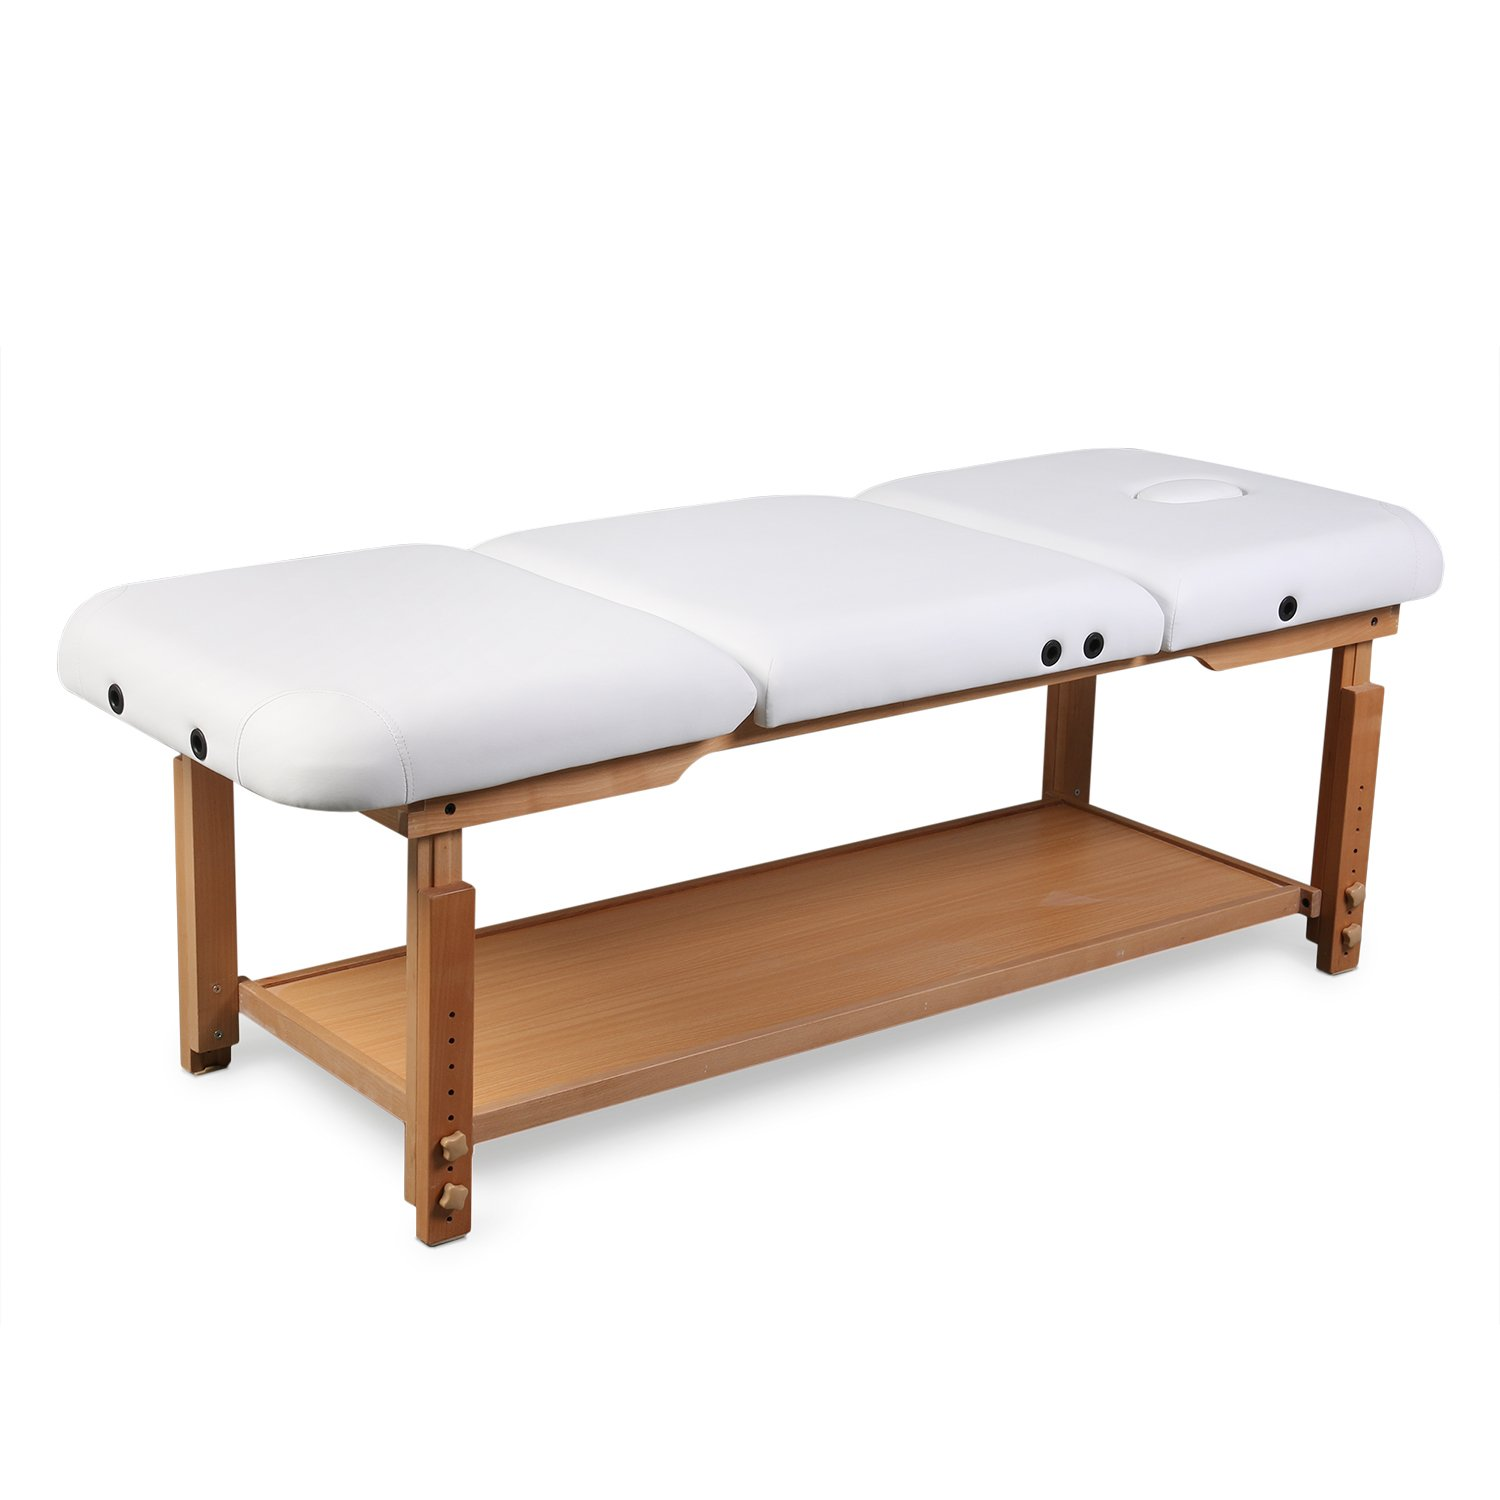 3 Sections Professional Stationary Massage Table Bed Beauty Therapy Salon Couch by Healthline Massage Products (Image #6)